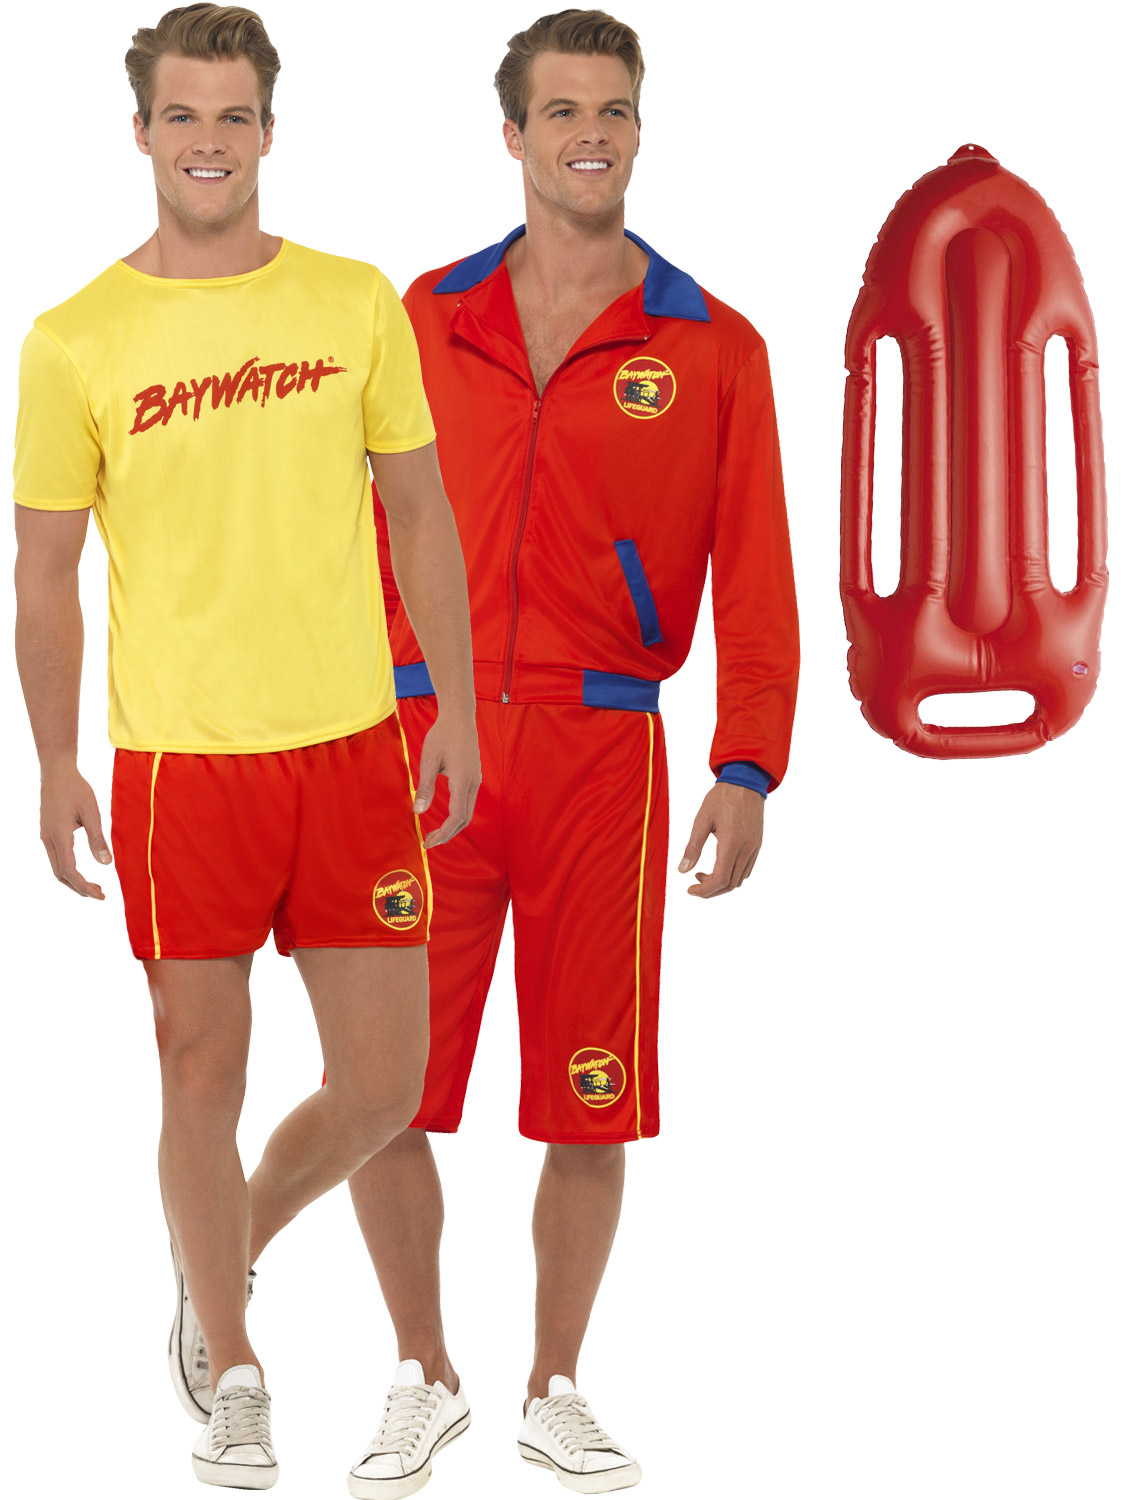 Ladies /& Mens Lifeguard Fancy Dress Stag Beach Baywatch Style Costume Outfit